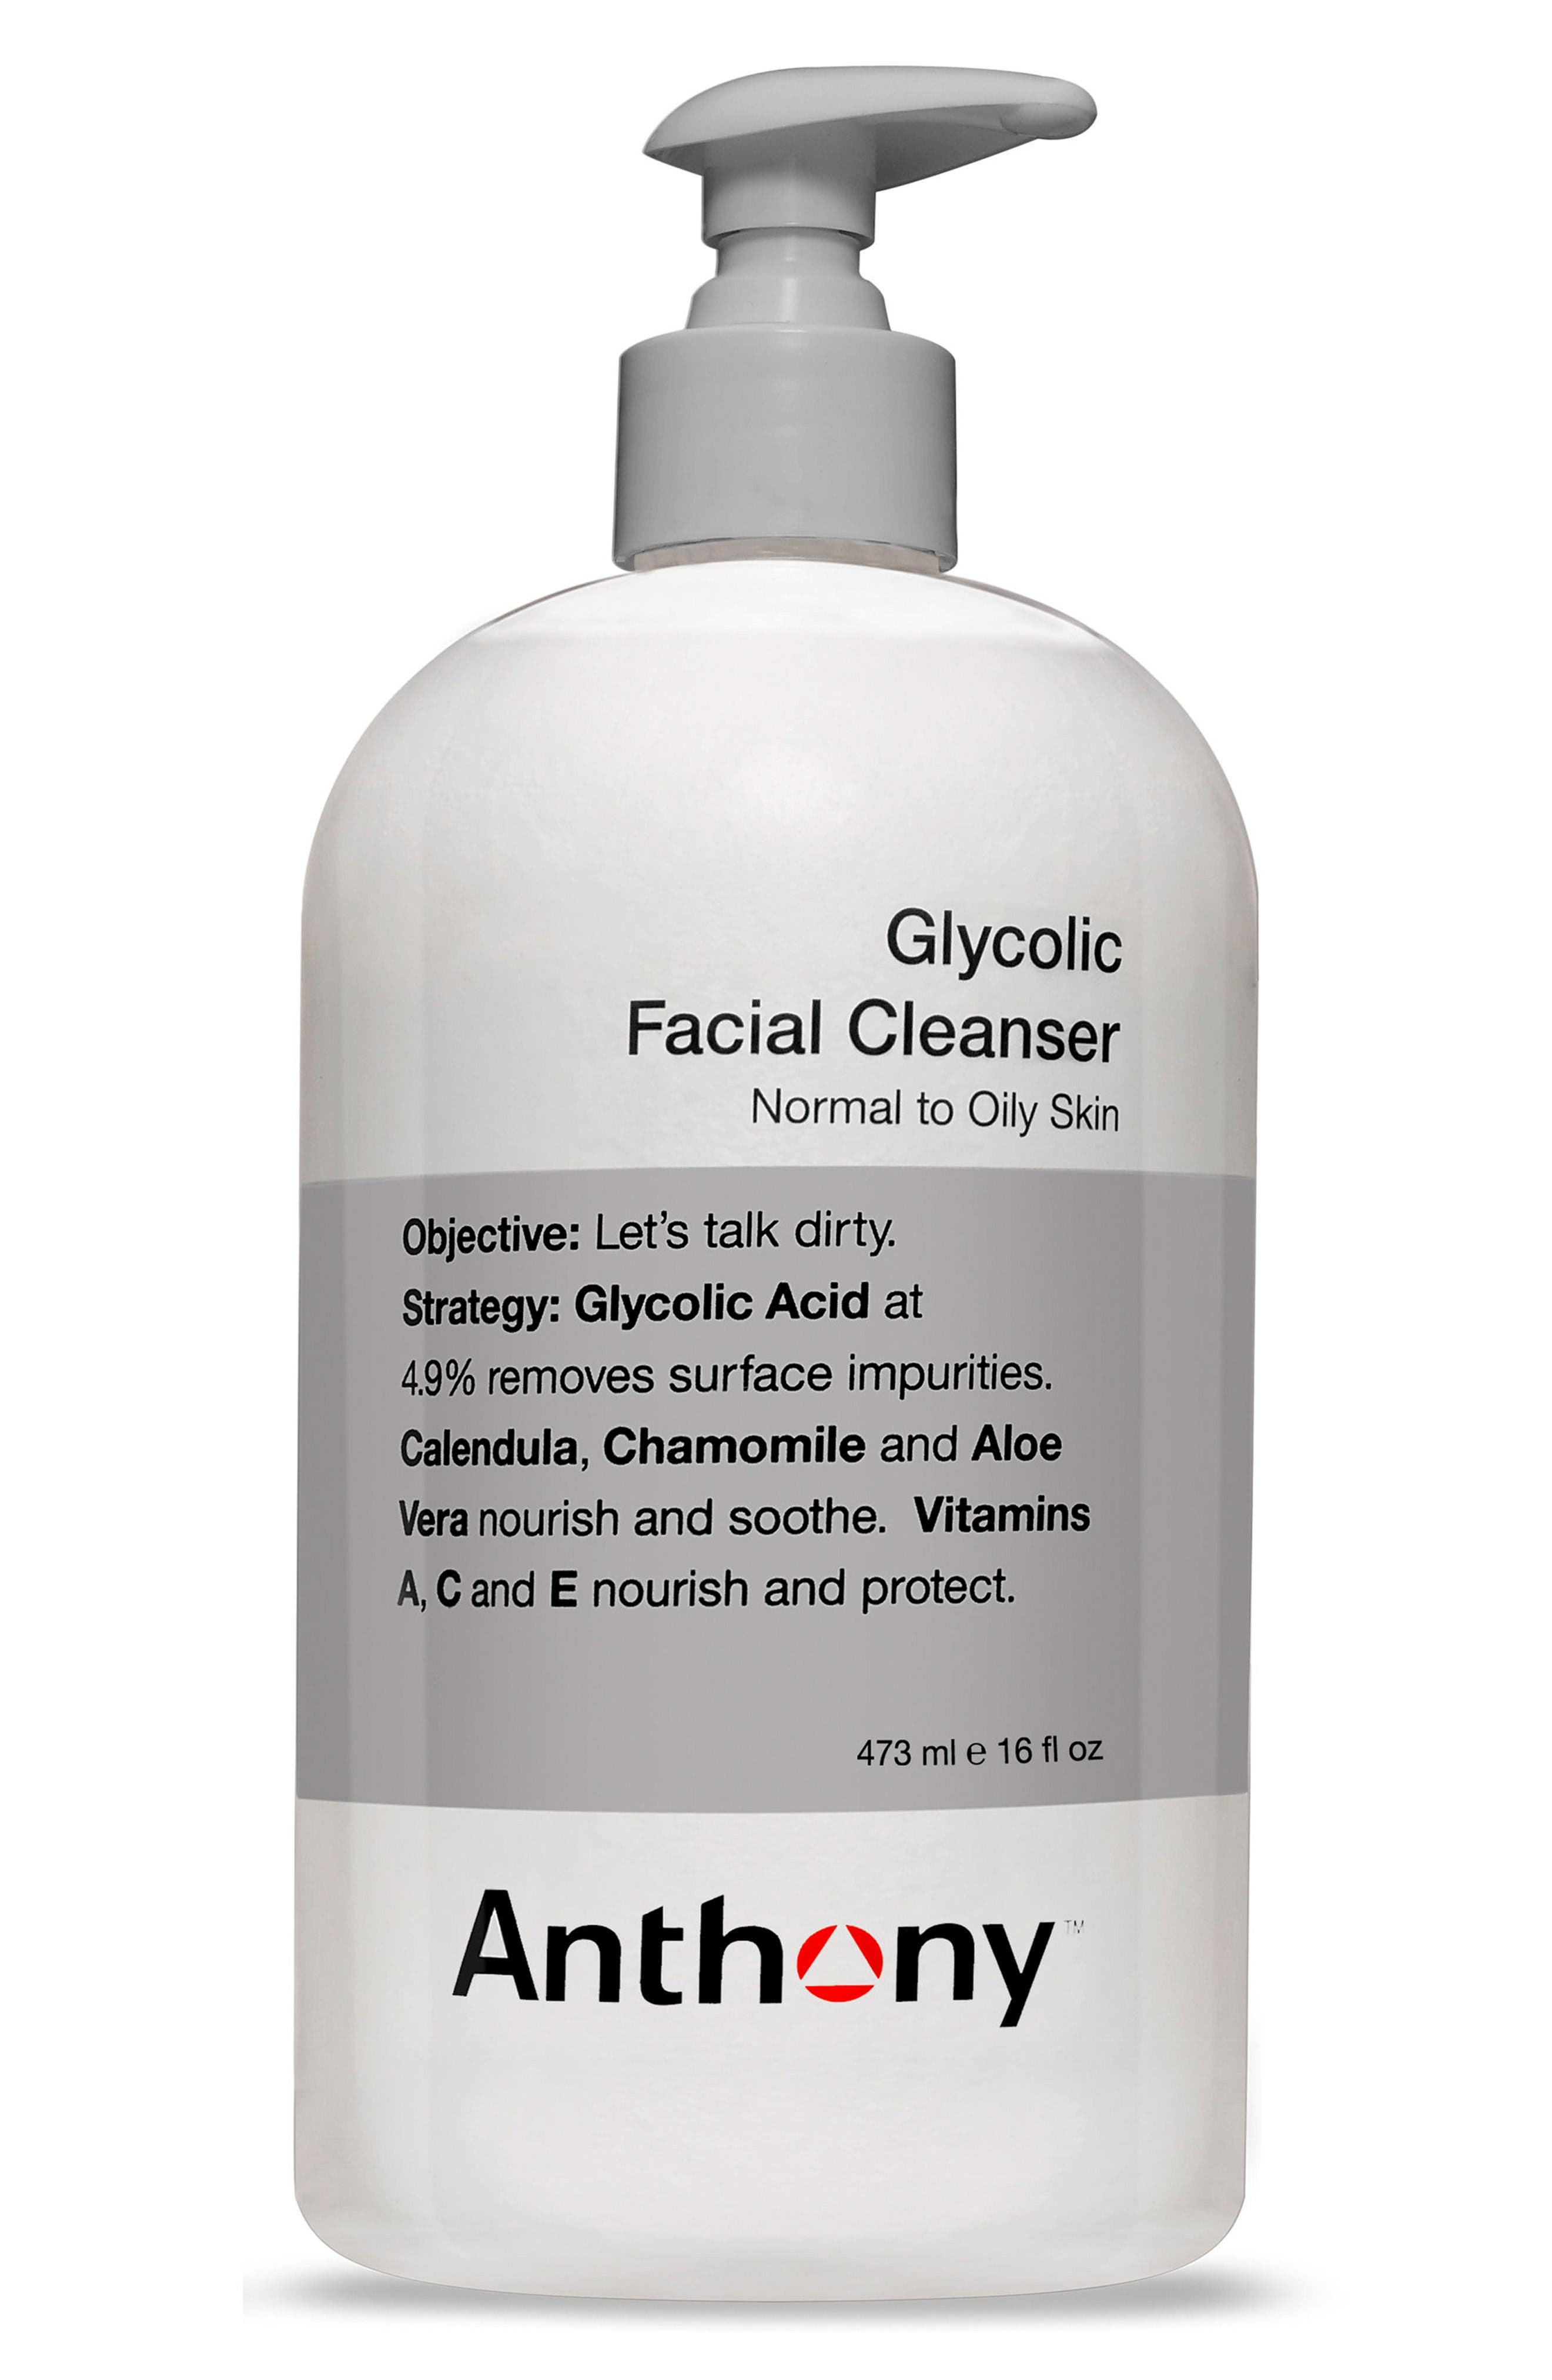 ANTHONY Glycolic Facial Cleanser with Dispensing Pump